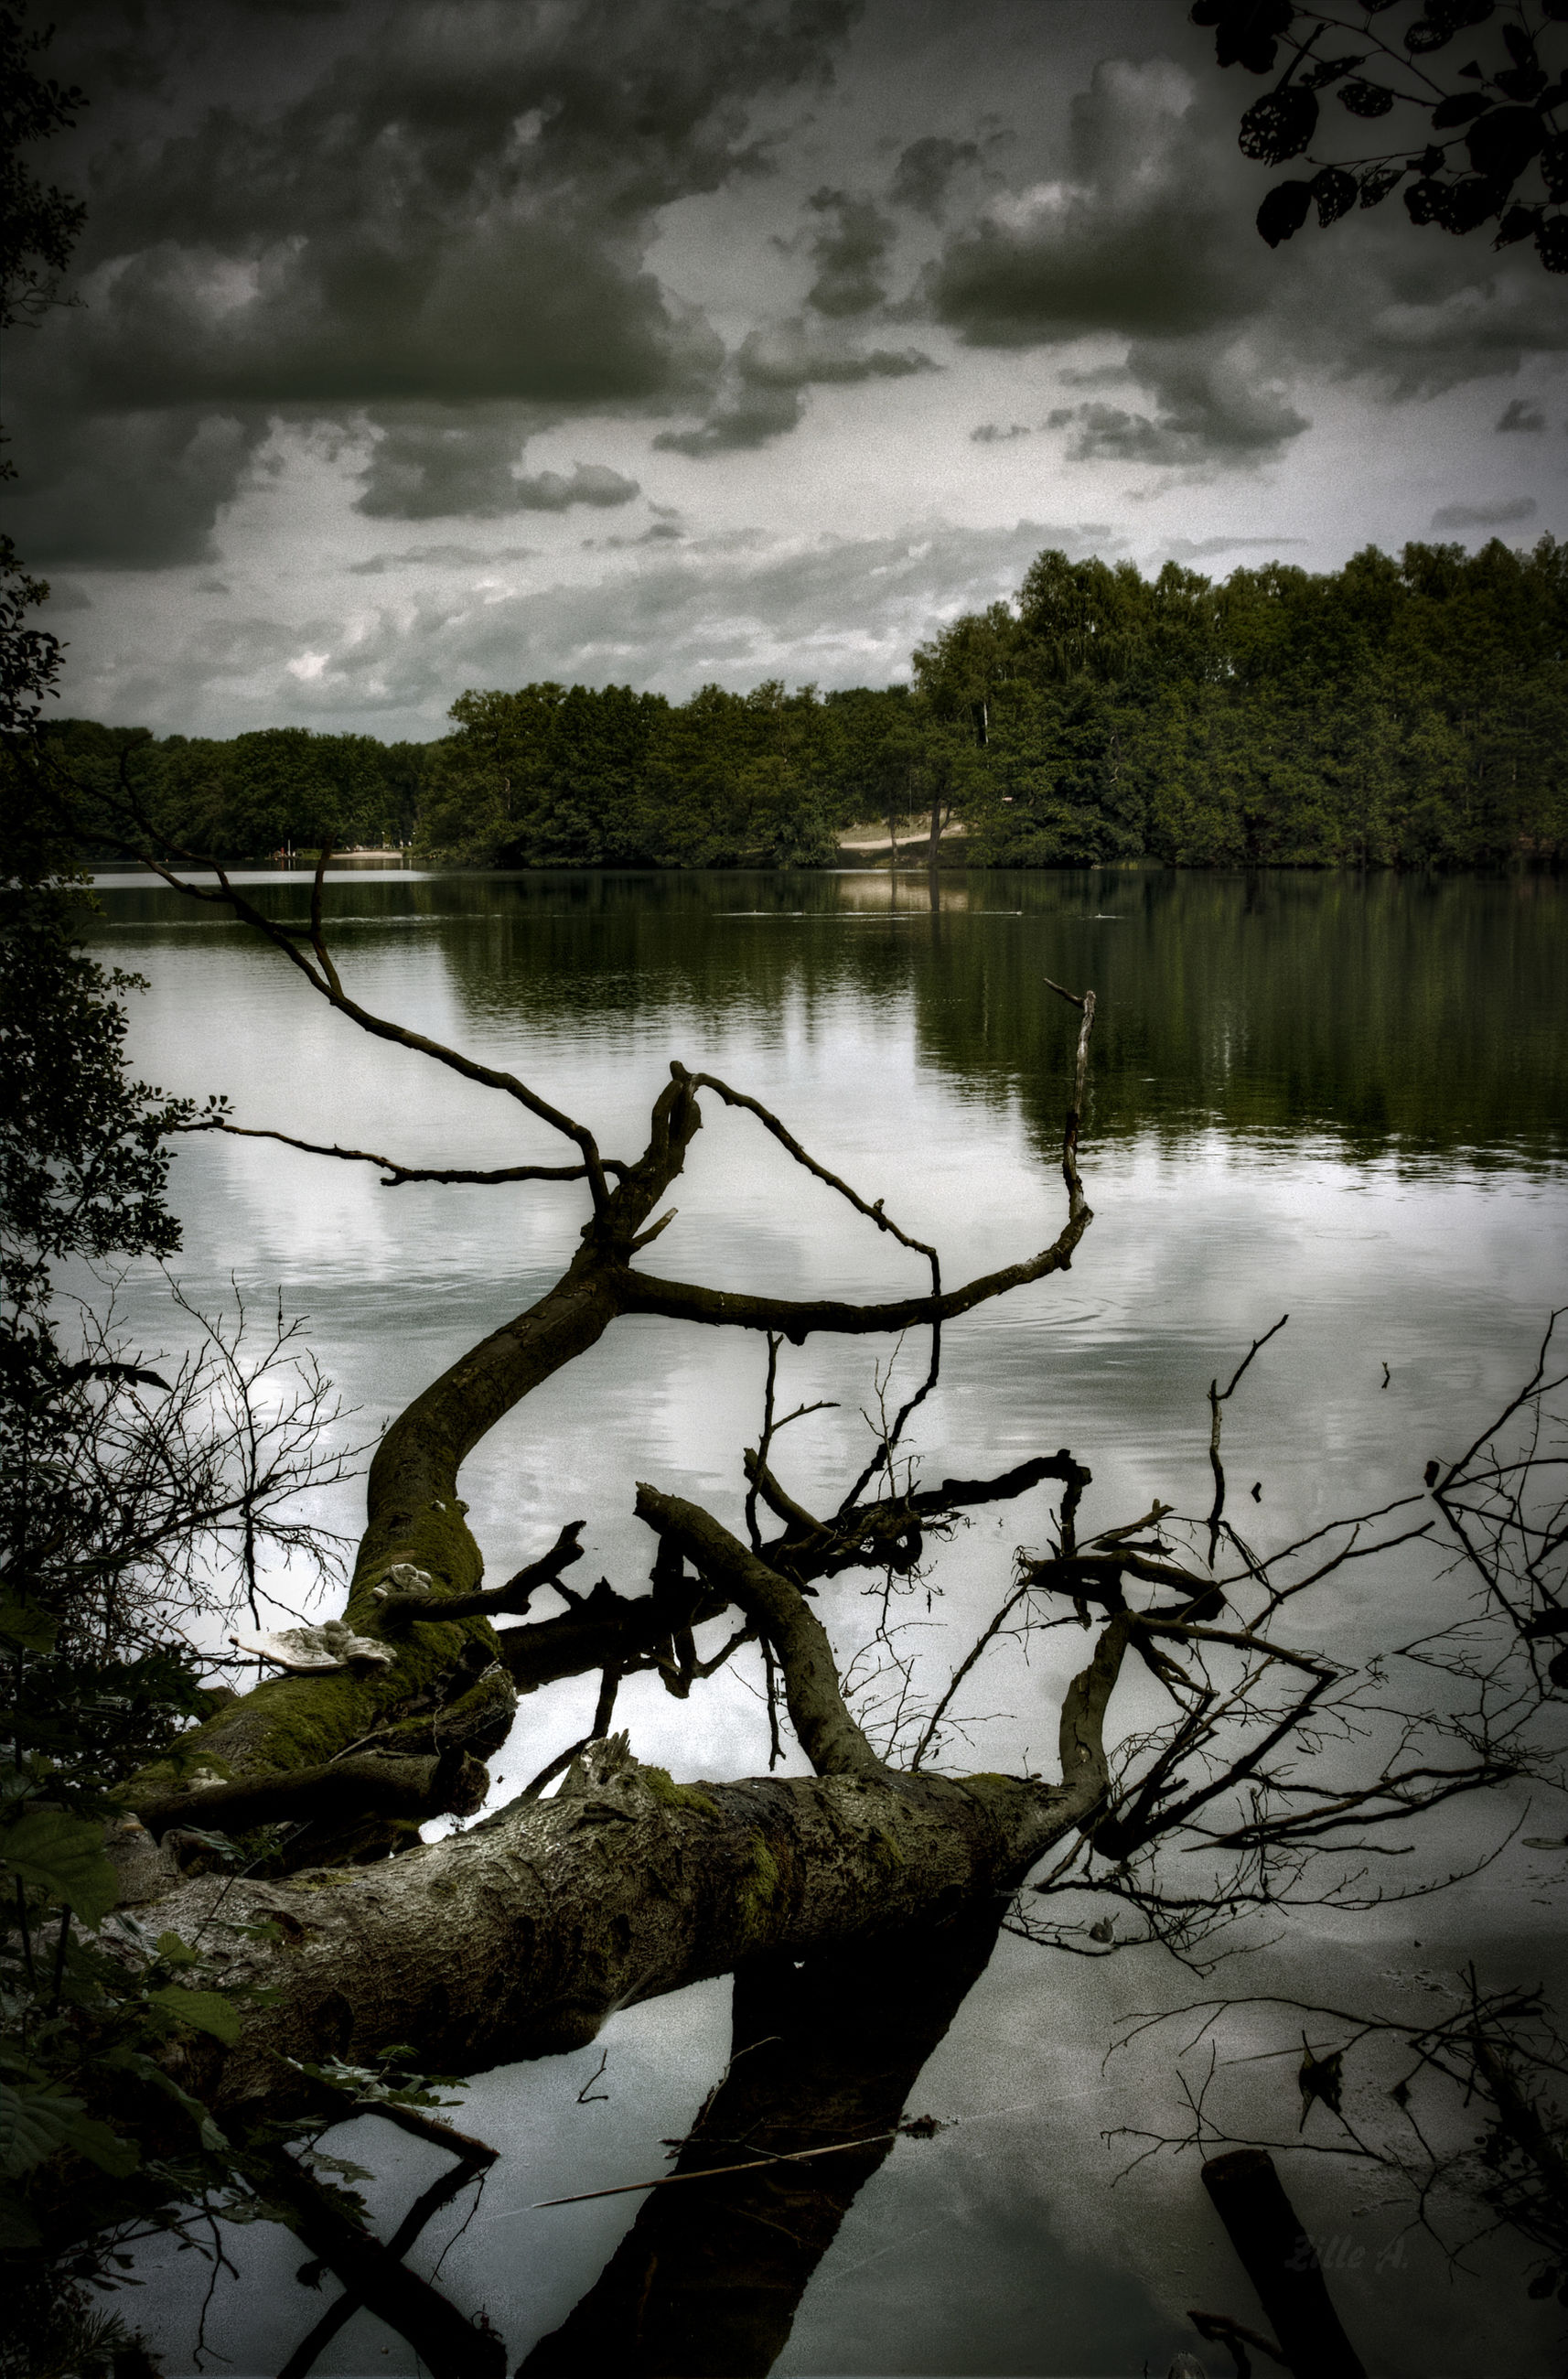 tree, nature, lake, reflection, water, beauty in nature, cloud - sky, no people, tranquil scene, tranquility, sky, outdoors, day, growth, scenics, plant, forest, landscape, grass, dead tree